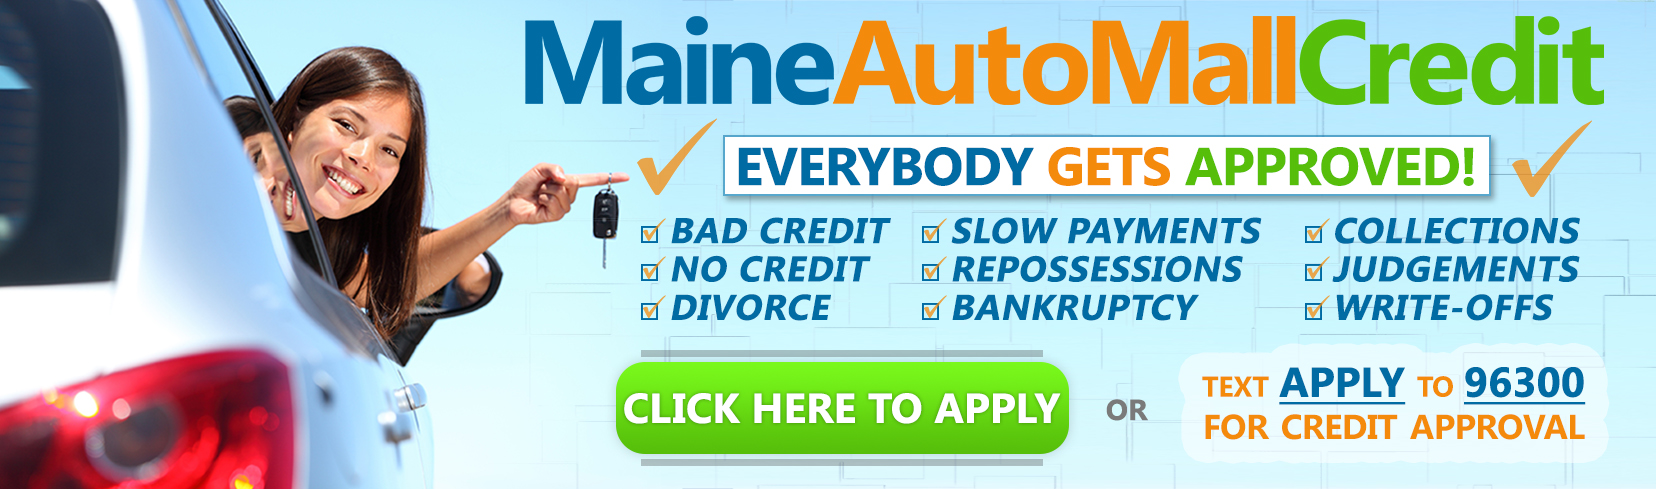 MaineAutoMall.com Credit